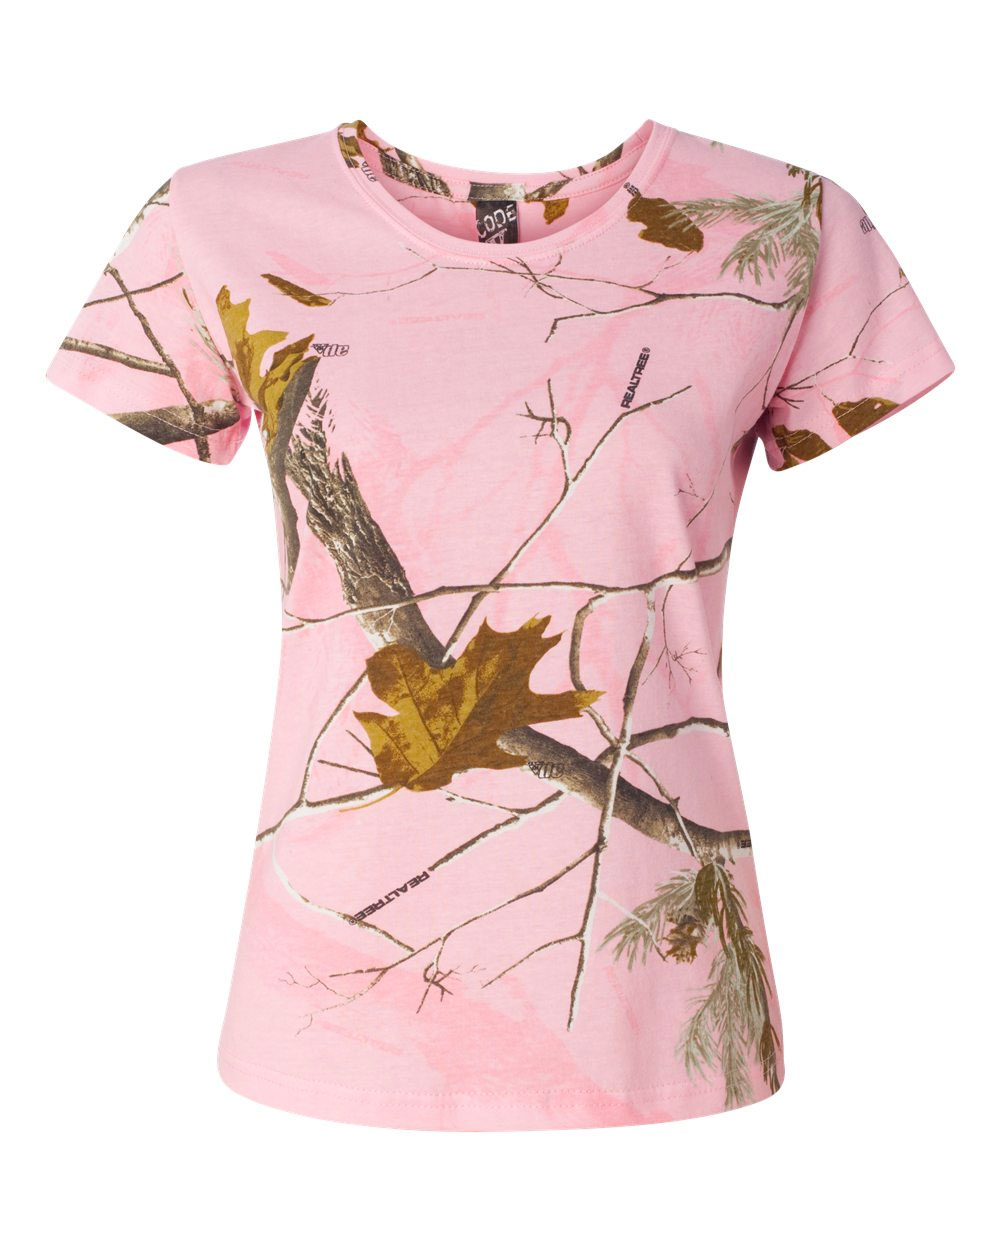 Code V Ladies Realtree Camouflage T-Shirt